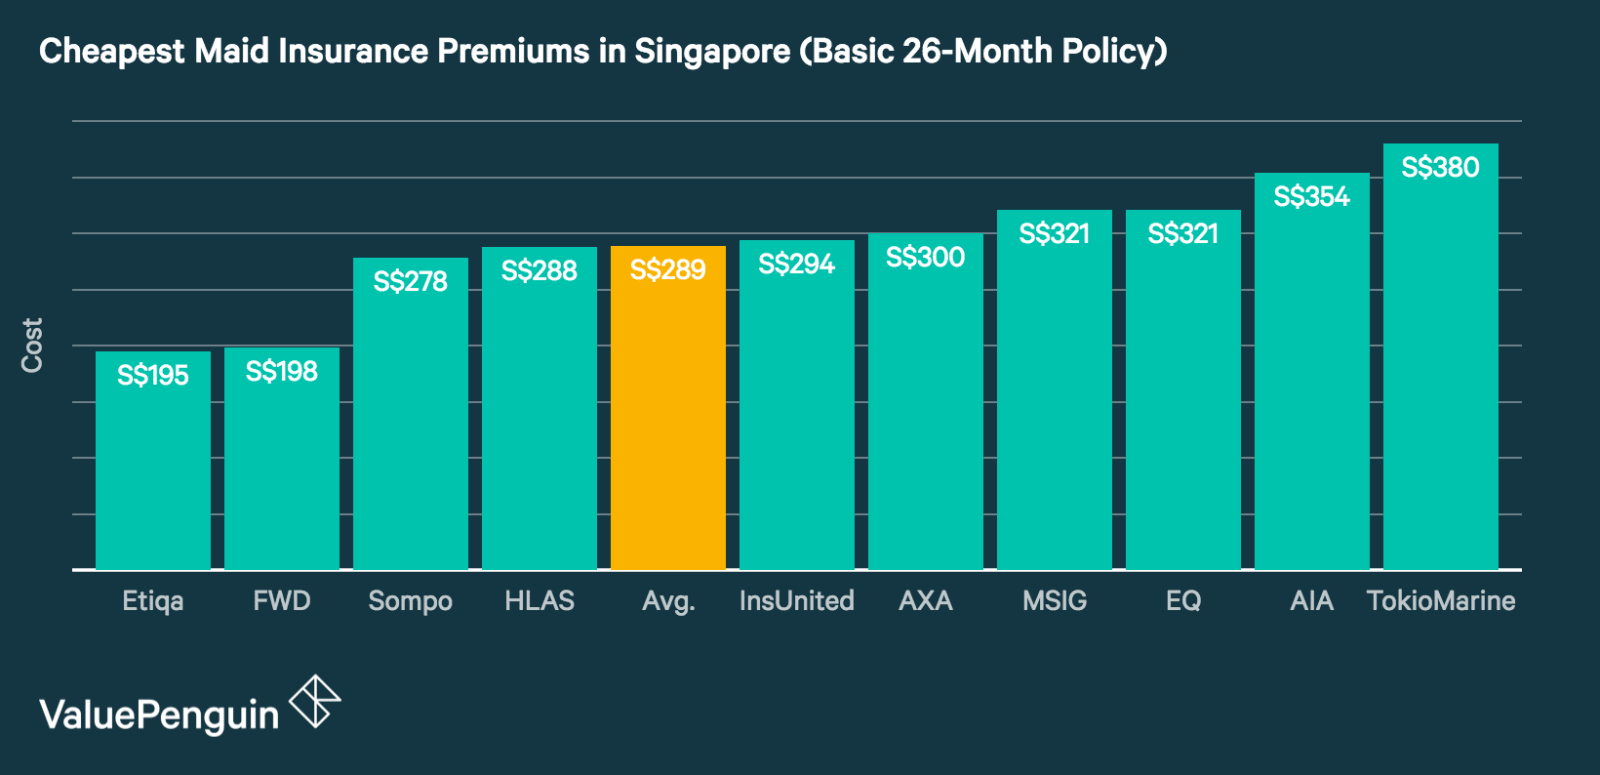 Prices of an annual maid insurance policy across a variety of insurers in Singapore